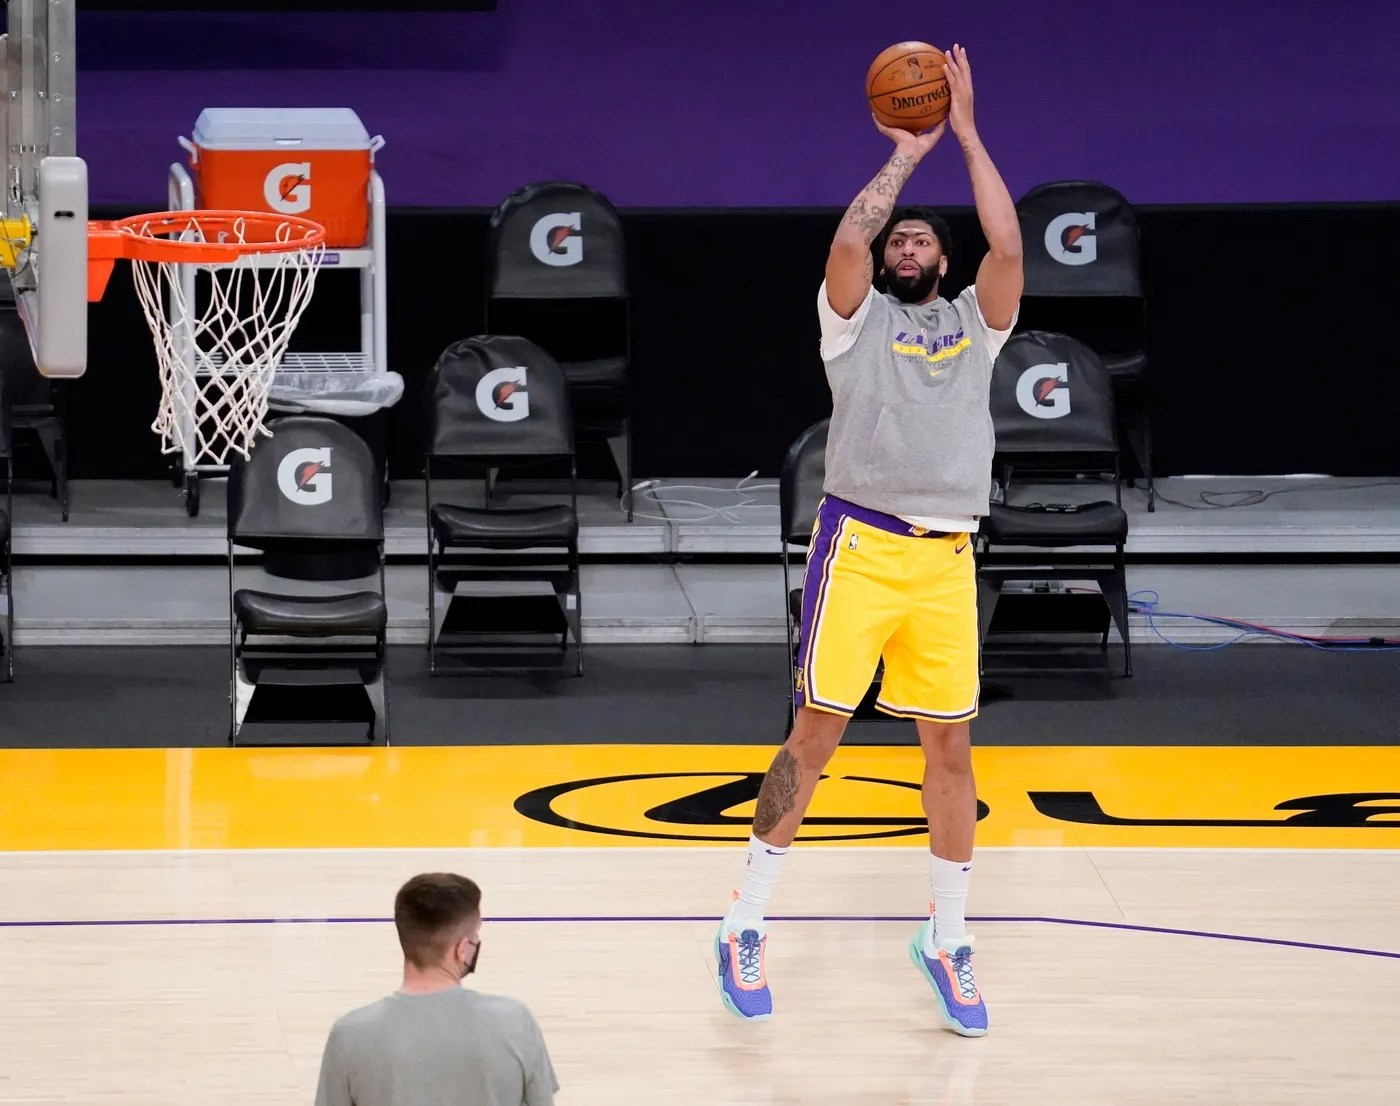 Mar 26, 2021; Los Angeles, California, USA; Los Angeles Lakers forward Anthony Davis works out before the Lakers play the Cleveland Cavaliers at Staples Center. Davis has missed several weeks because of a calf injury.